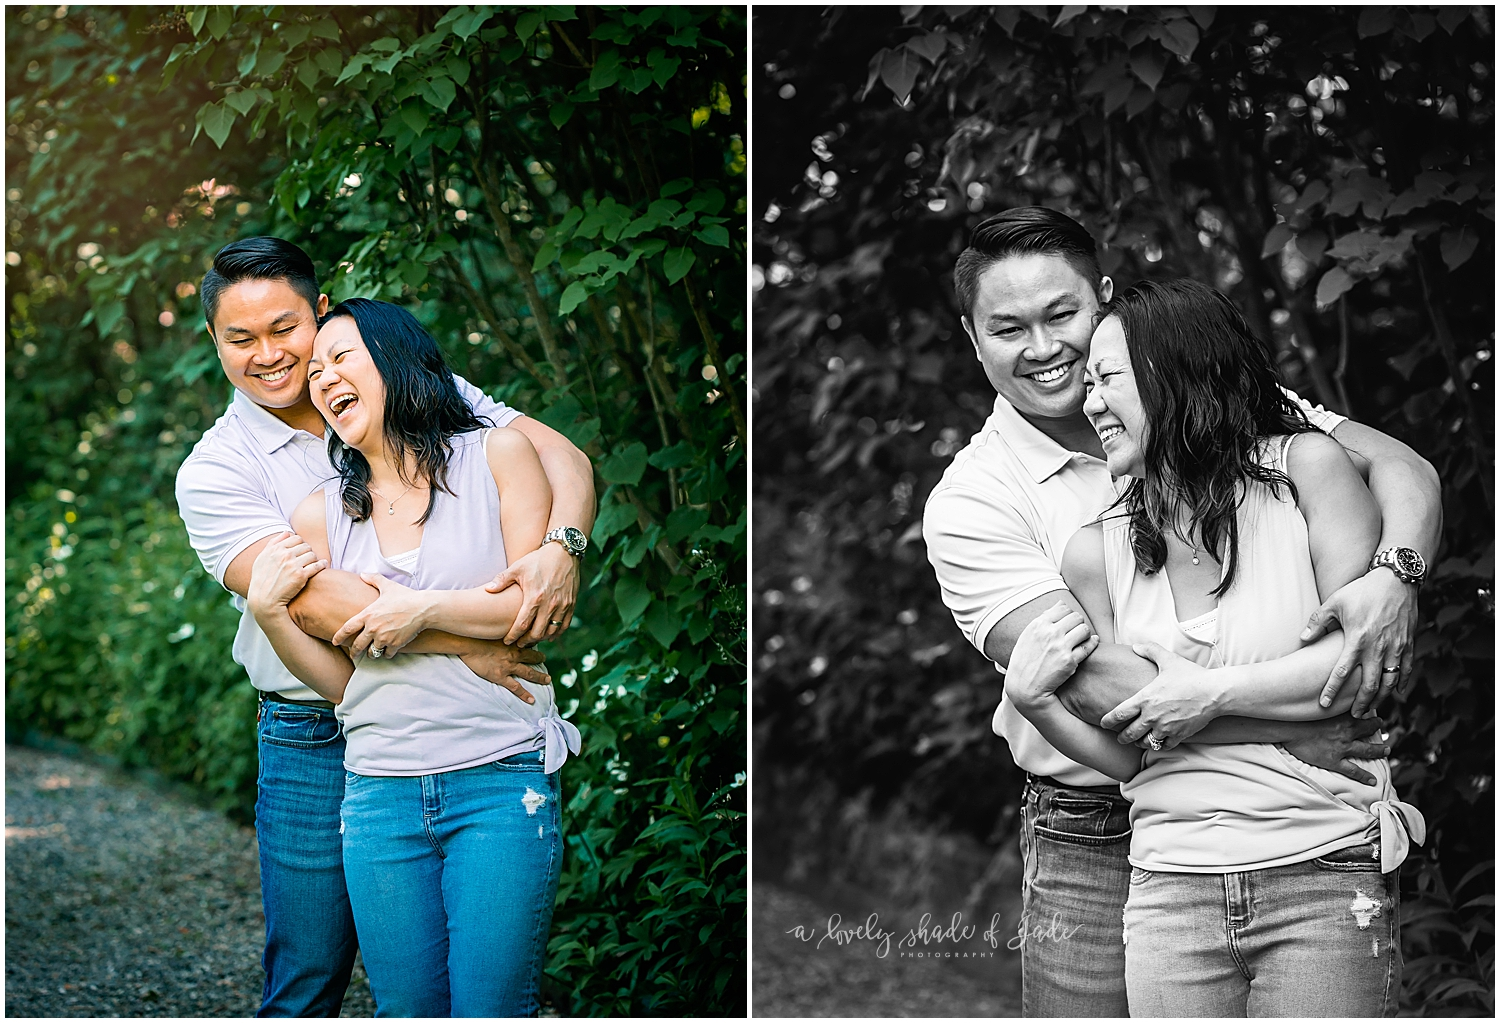 Fun_Extended_Family_Session_Morristown_NJ_Photography_0004.jpg